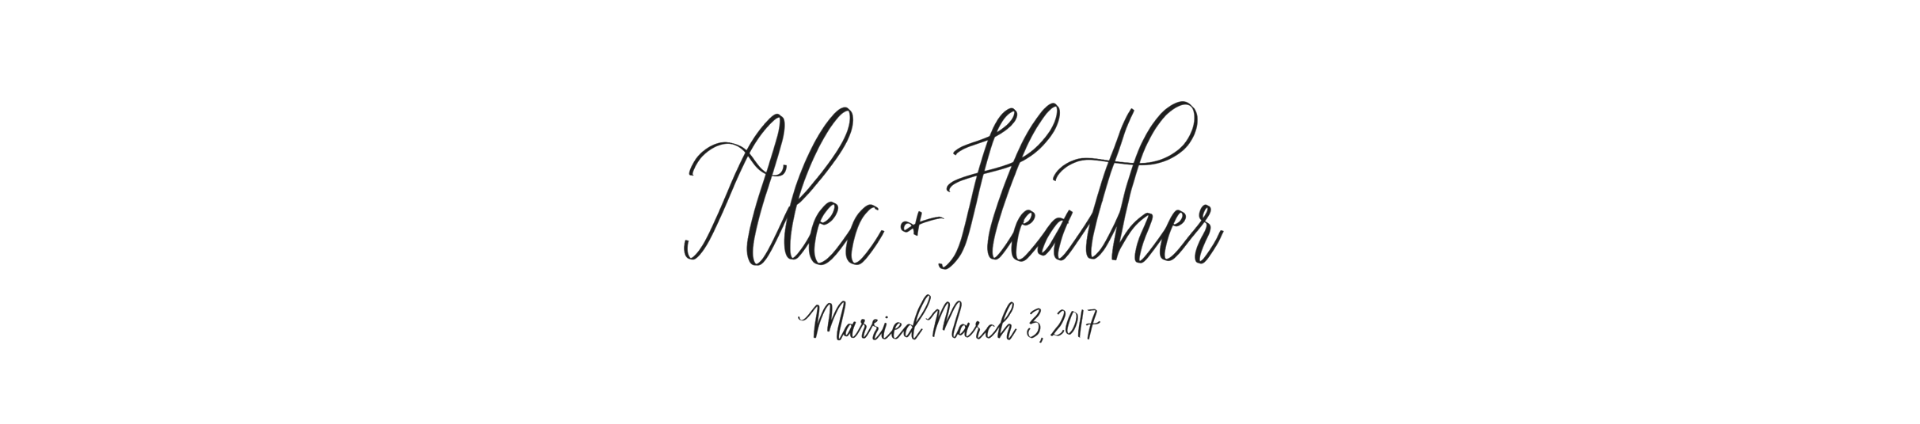 Alec and Heather Married copy.PNG